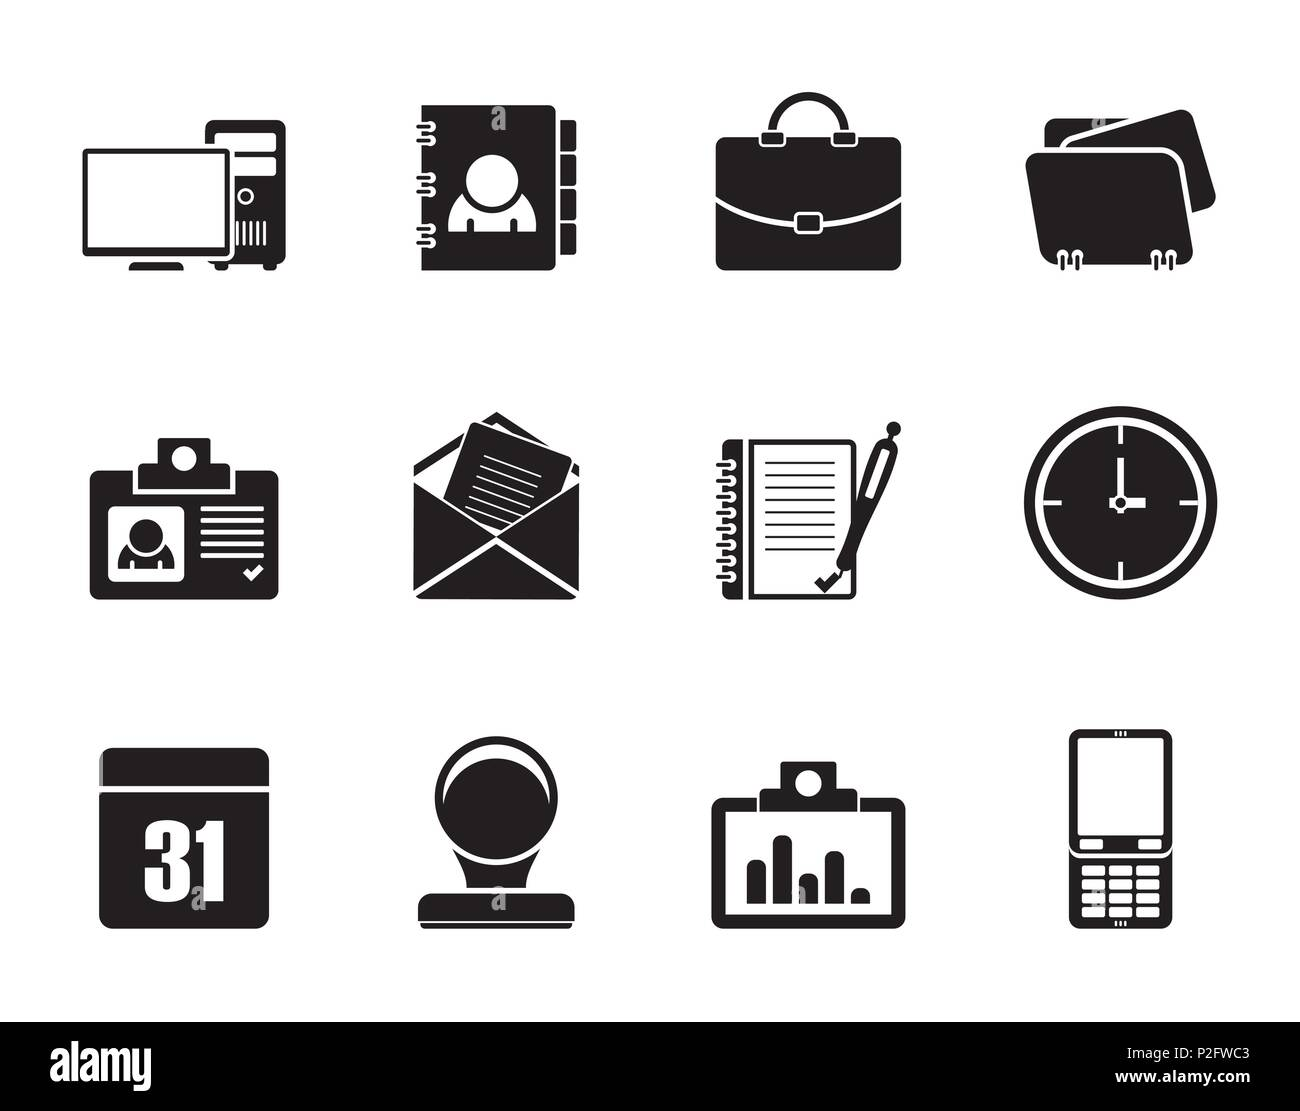 Silhouette Web Applications, Business and Office icons, Universal icons - vector icon set - Stock Image